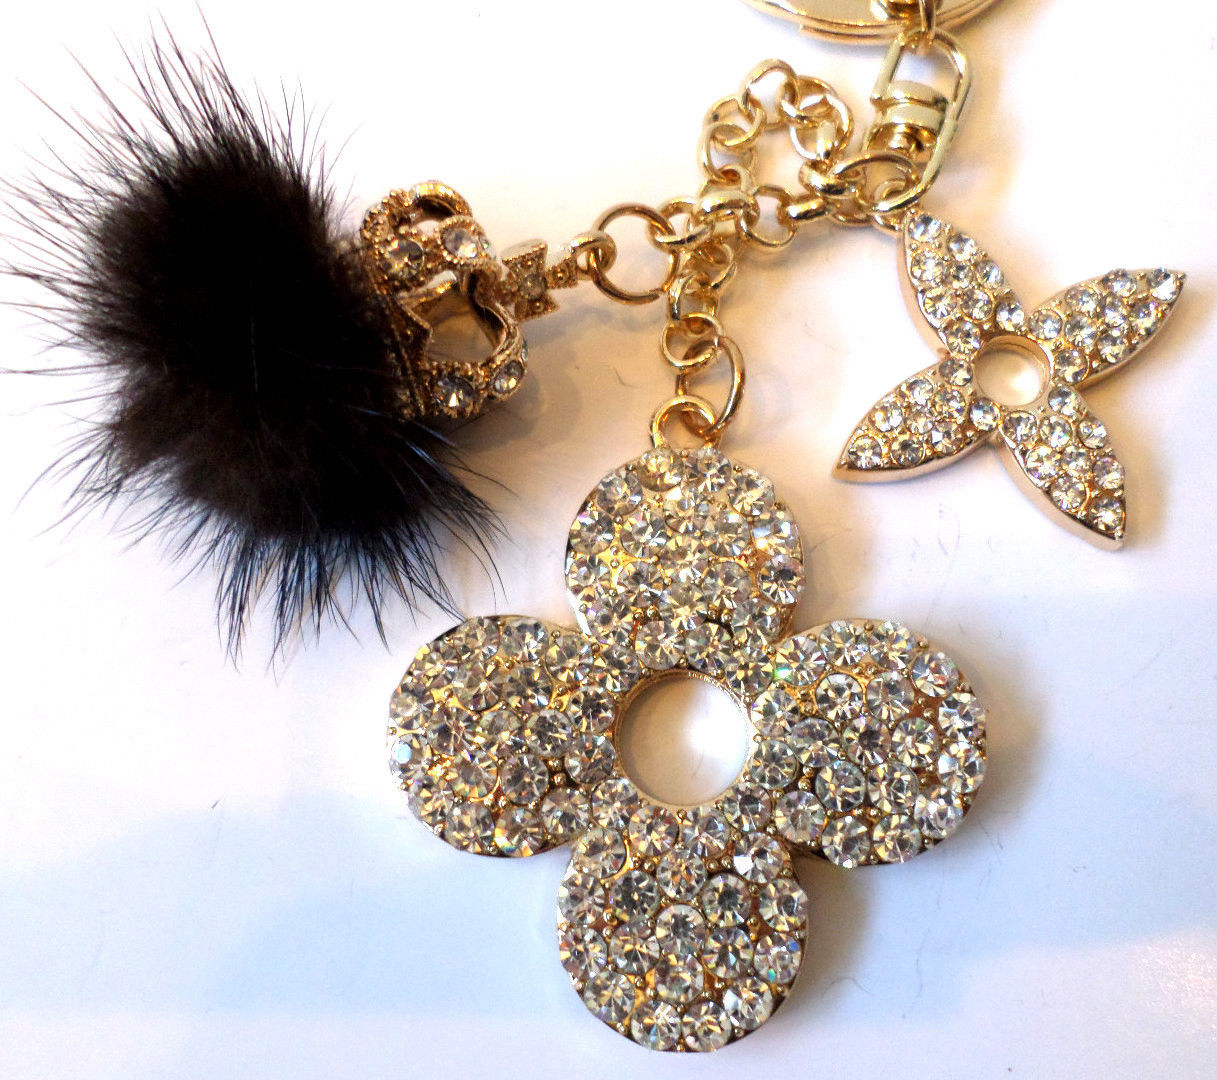 Rhinestone Bling Cute Key Chain Fob Phone Purse Charm Flower Crown